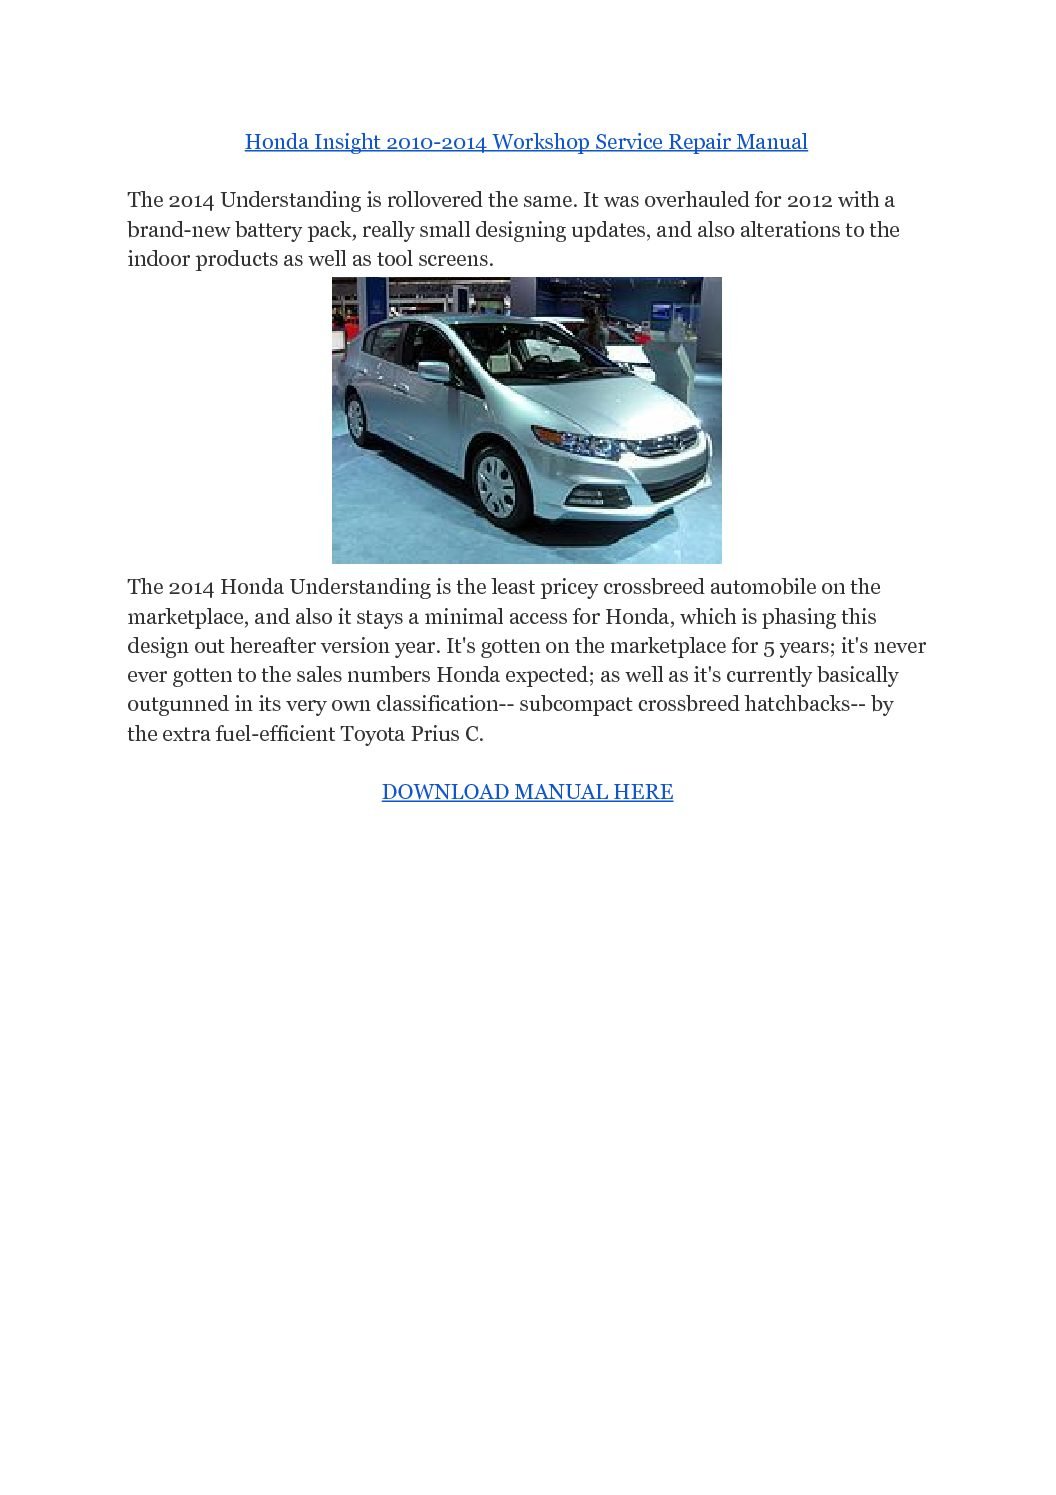 Honda Insight 2010-2014 Workshop Service Repair Manual